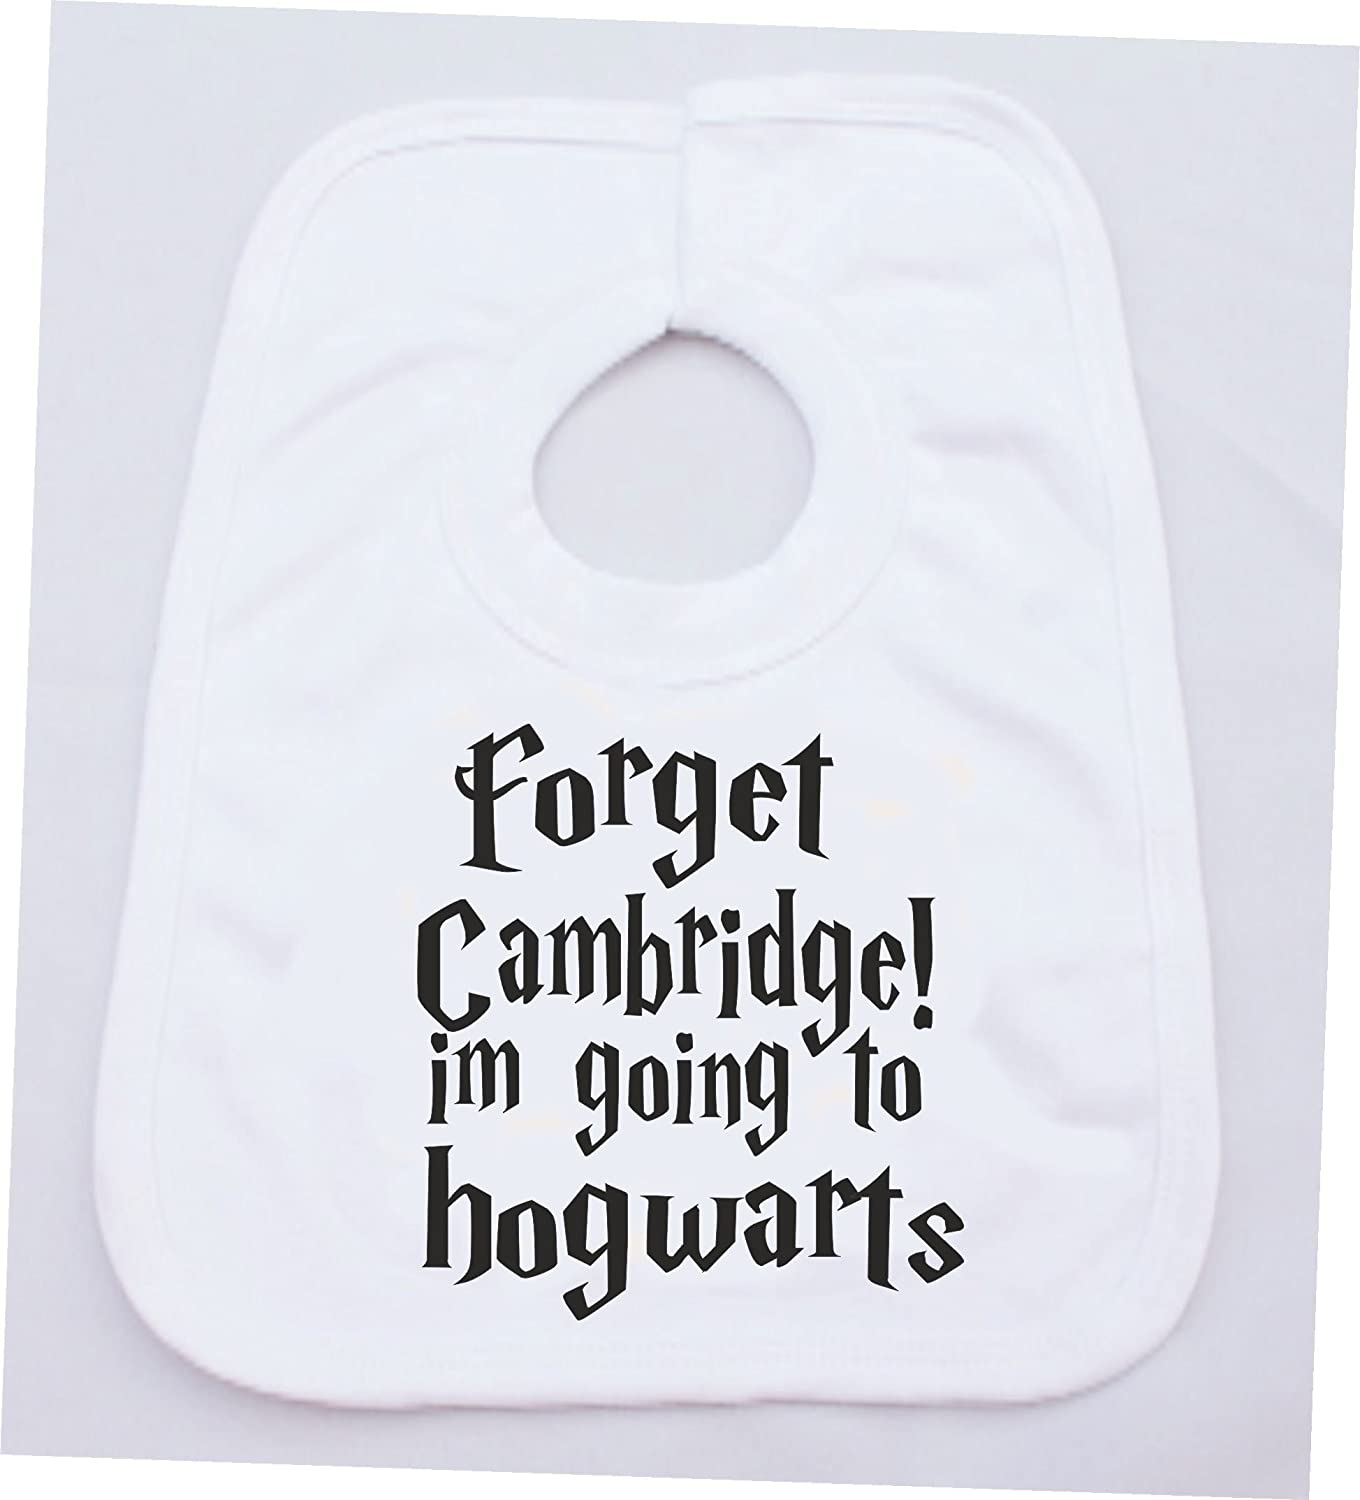 FORGET CAMBRIDGE IM GOING TO HOGWARTS FUNNY COTTON WHITE BABY VEST OR BIB (first size bib)